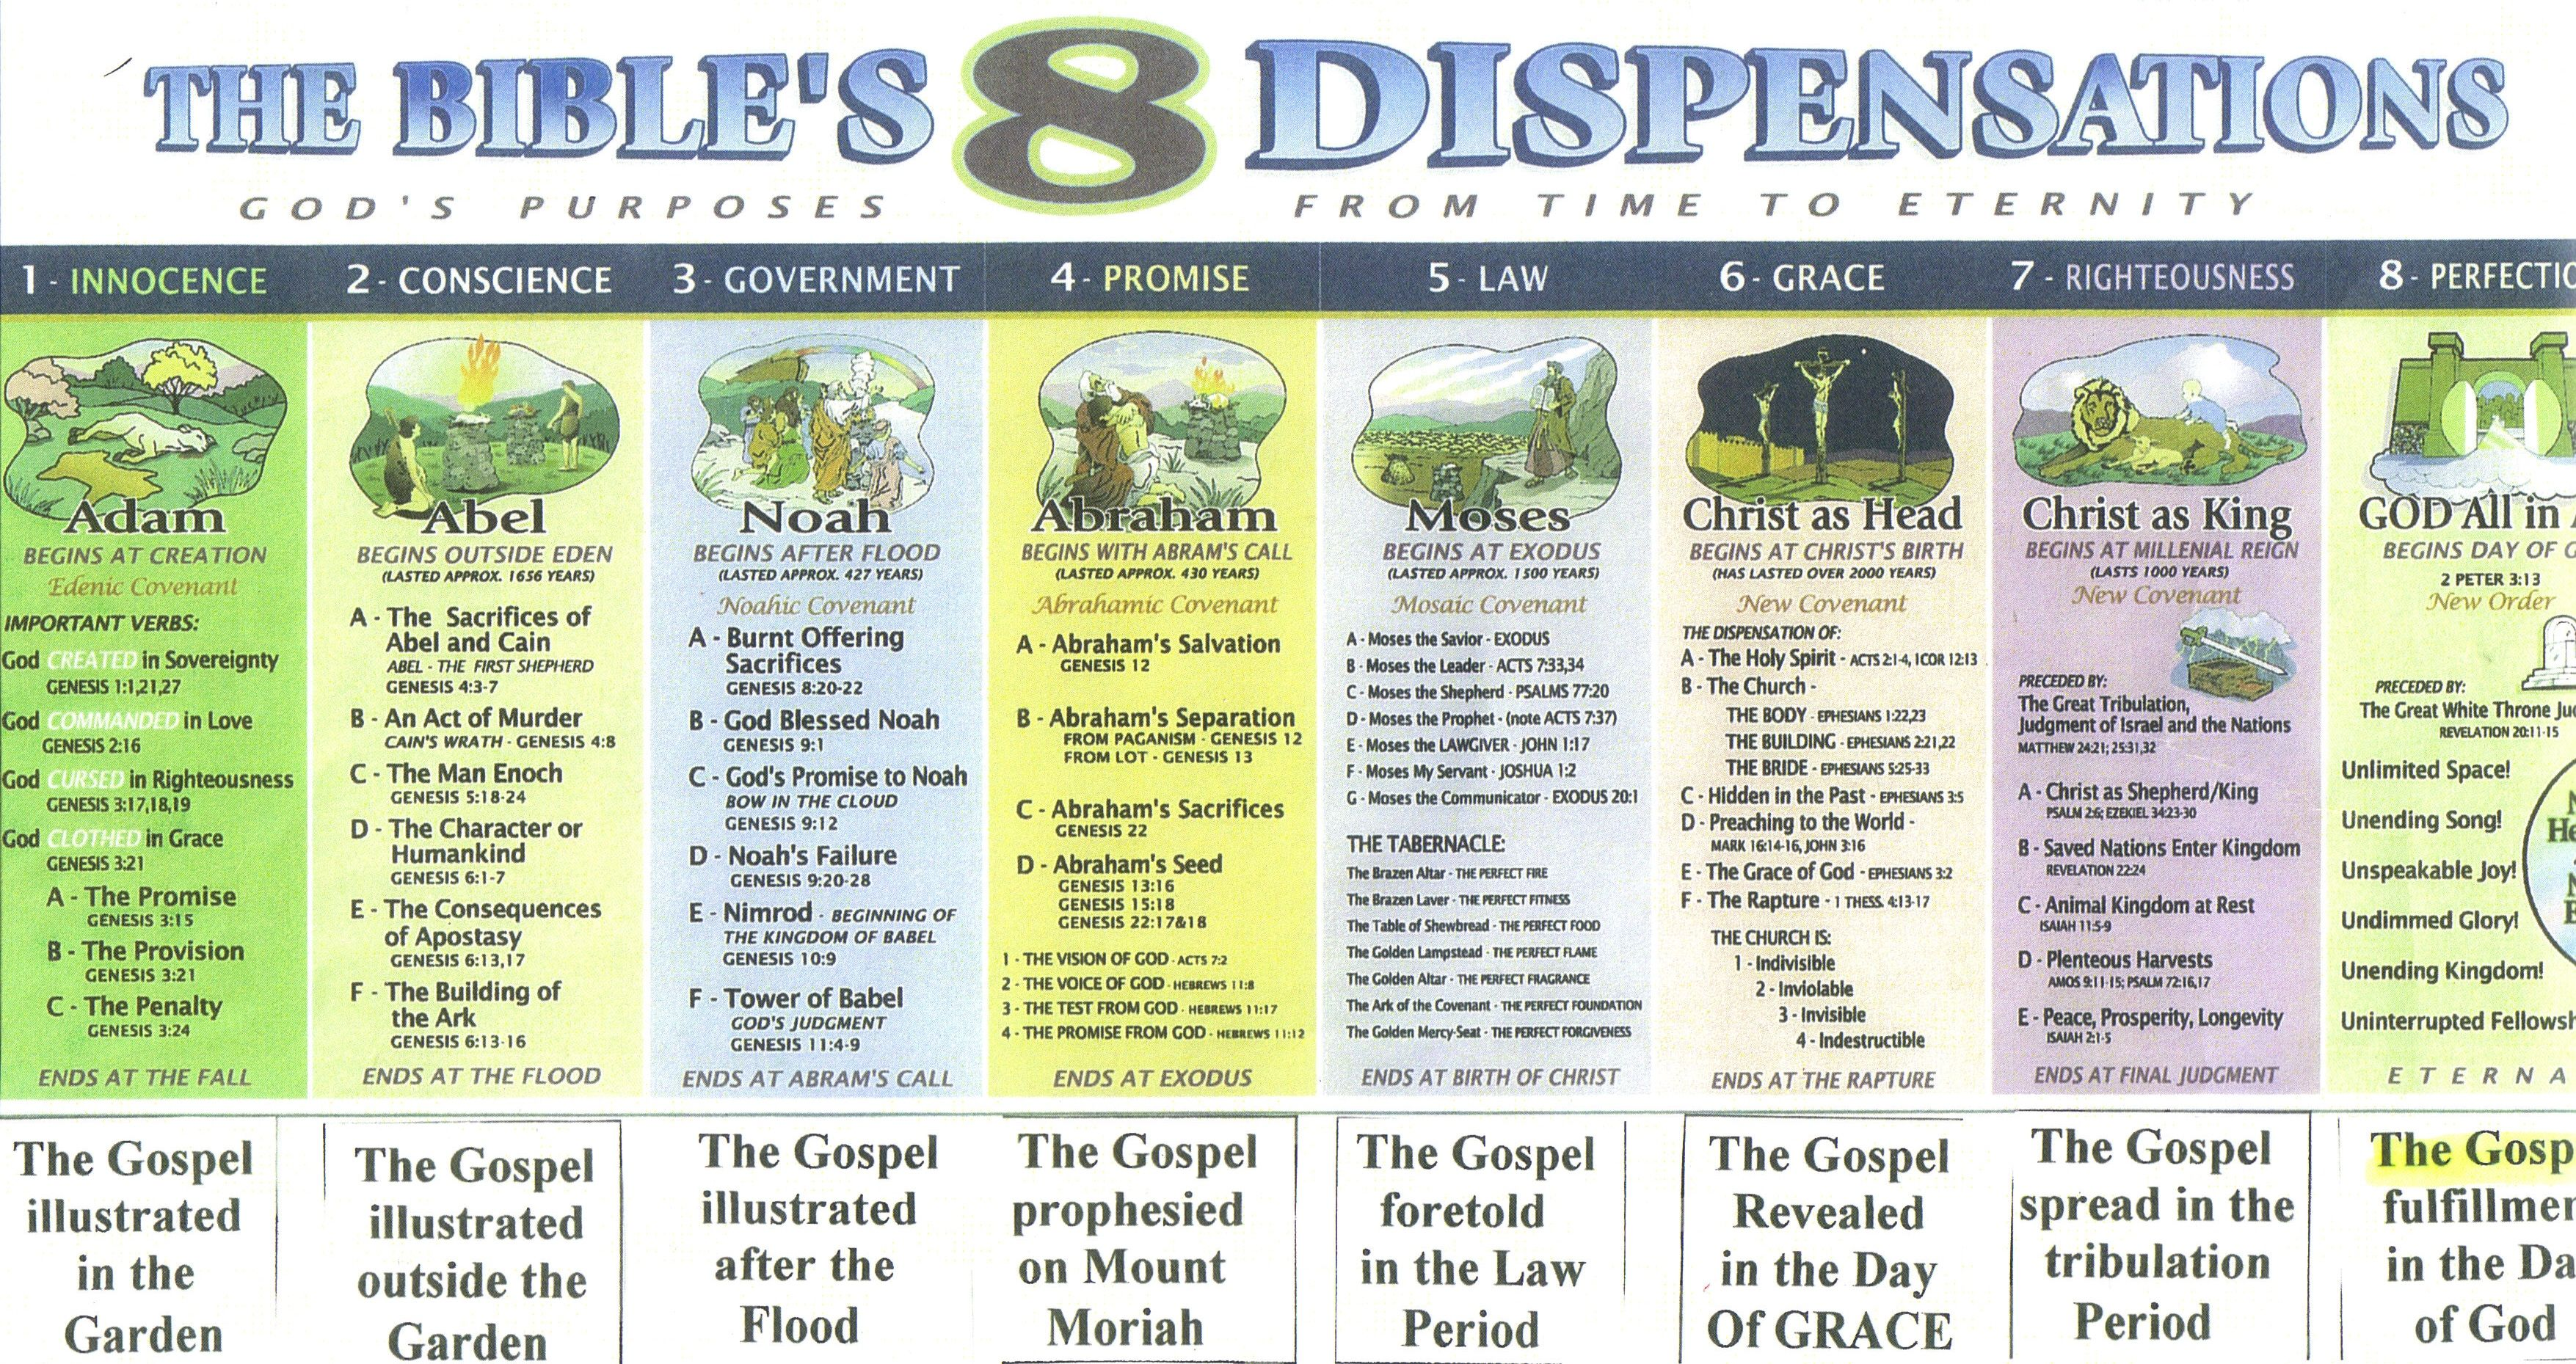 Albert Hull Dispensations Chart